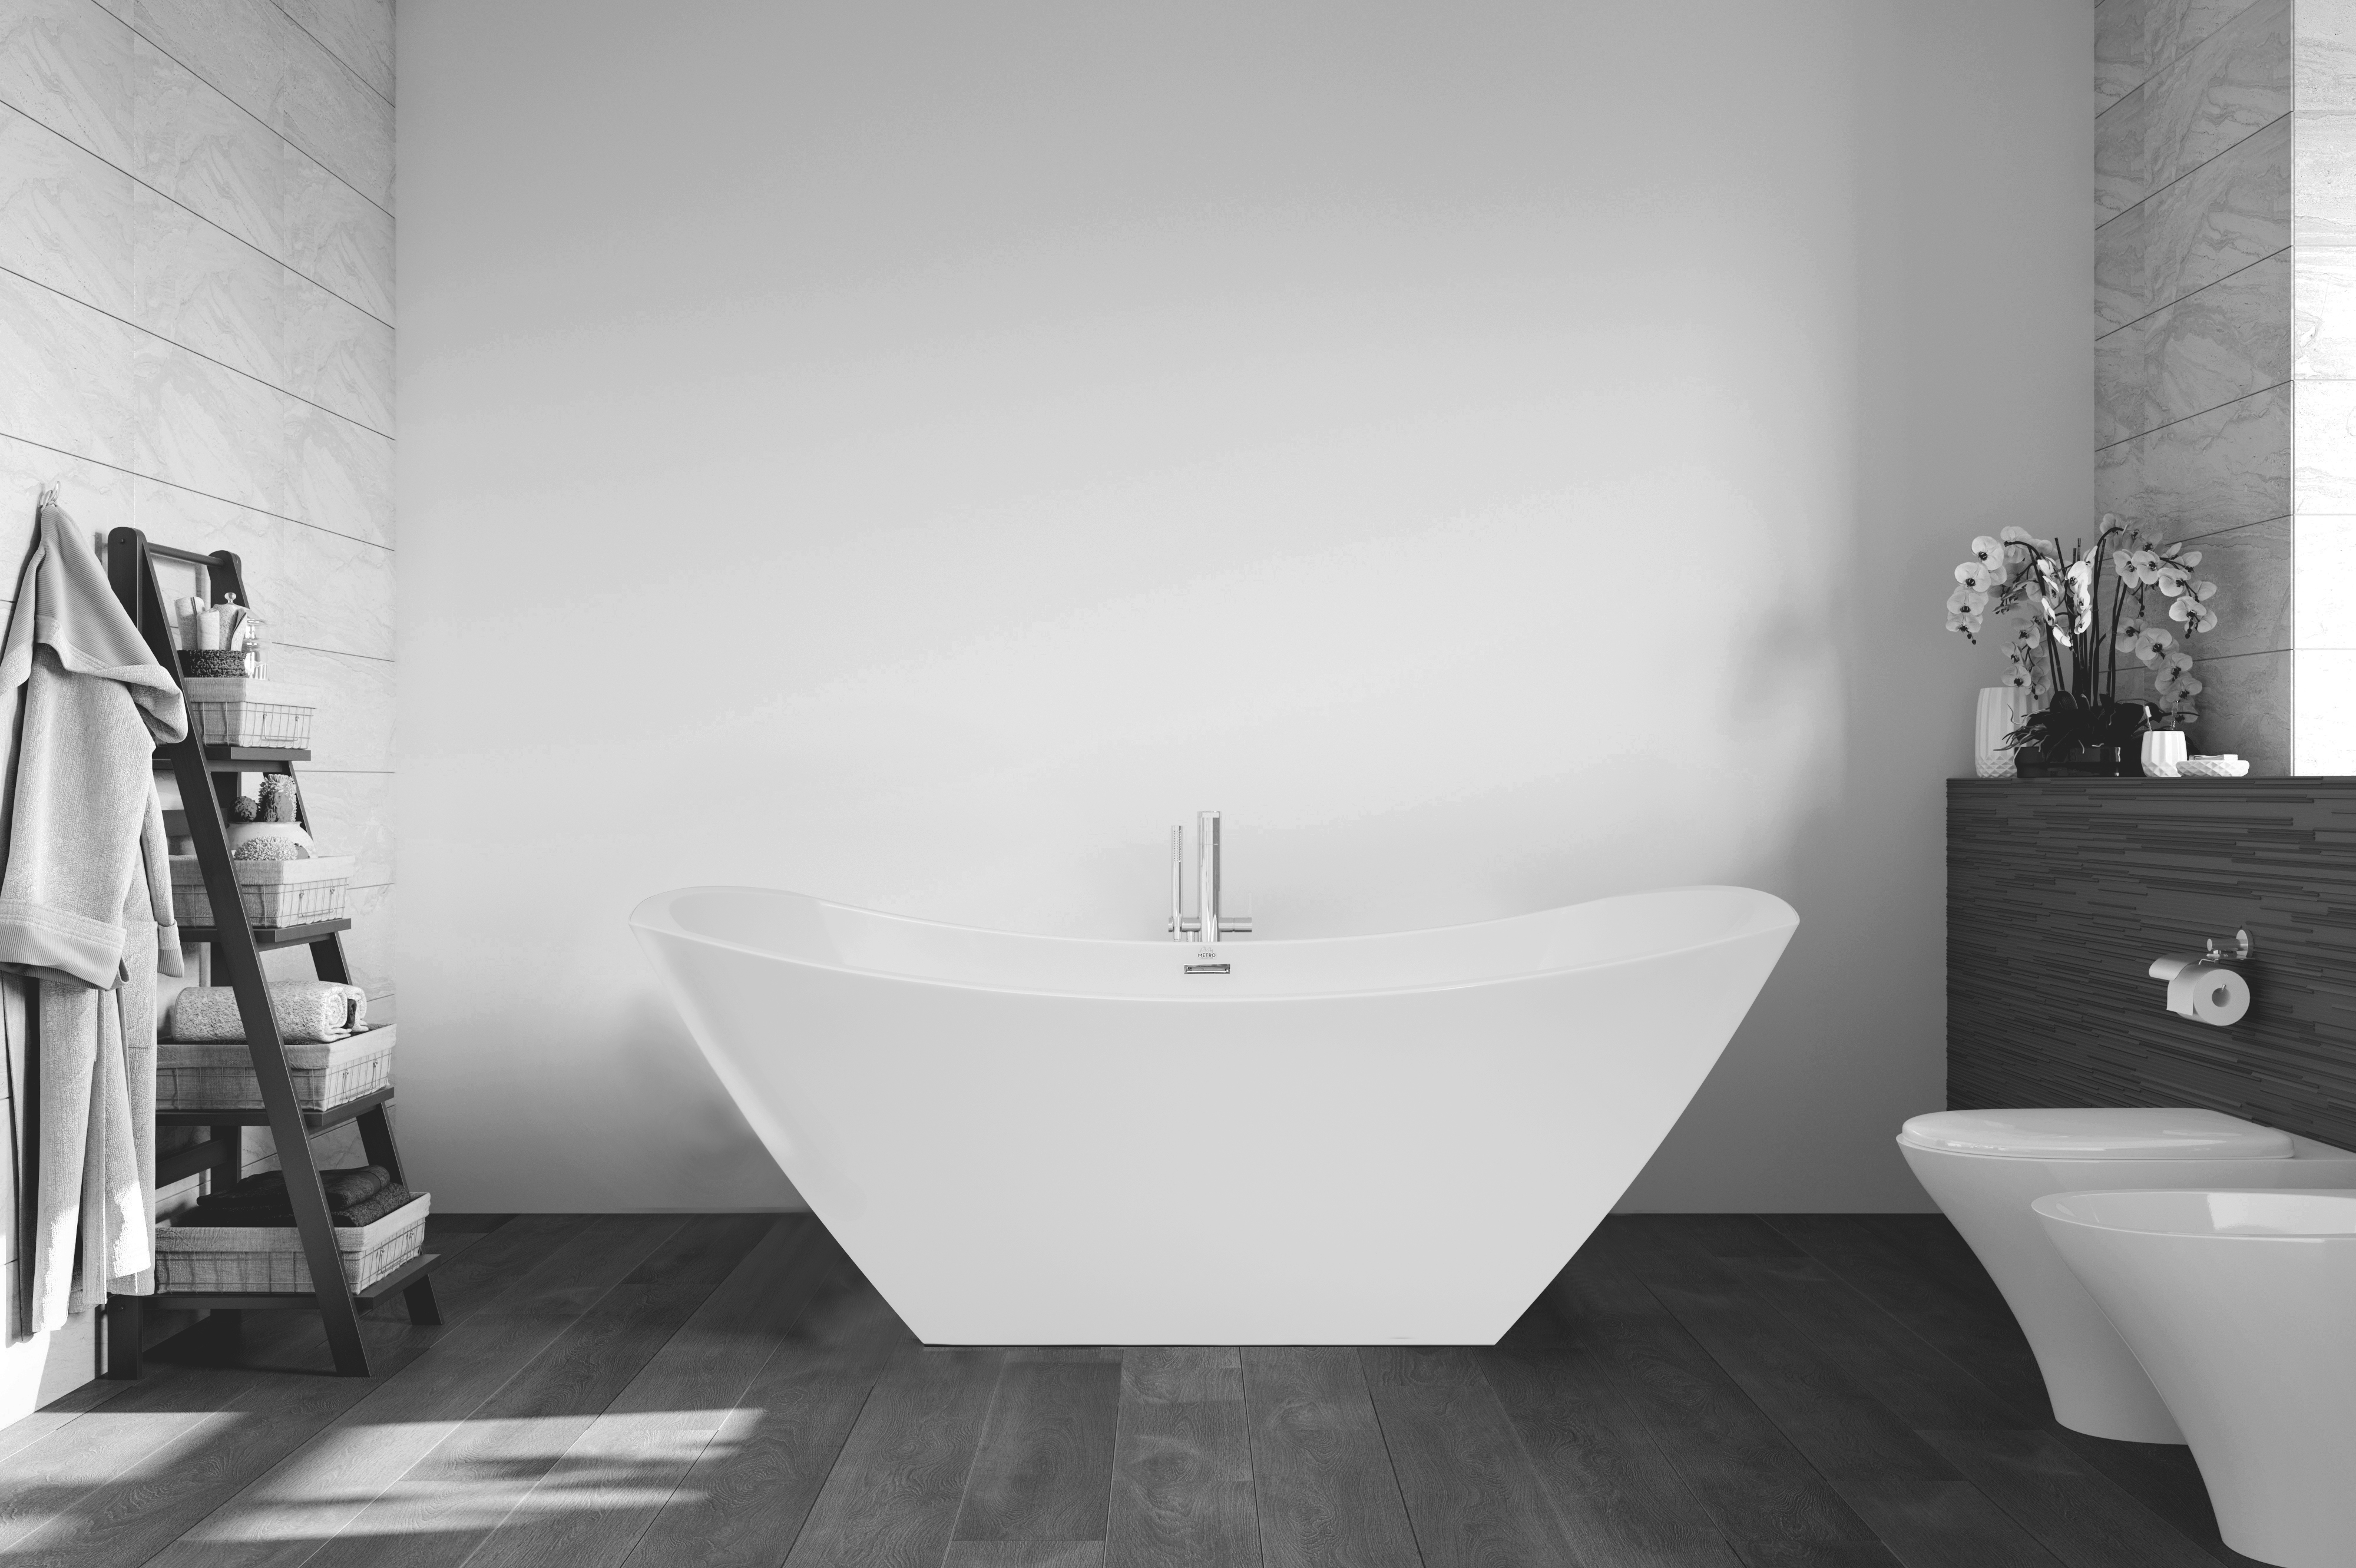 moen high without arc handle and faucet view hand tub shower dp roman bathtub eva two larger waterfall